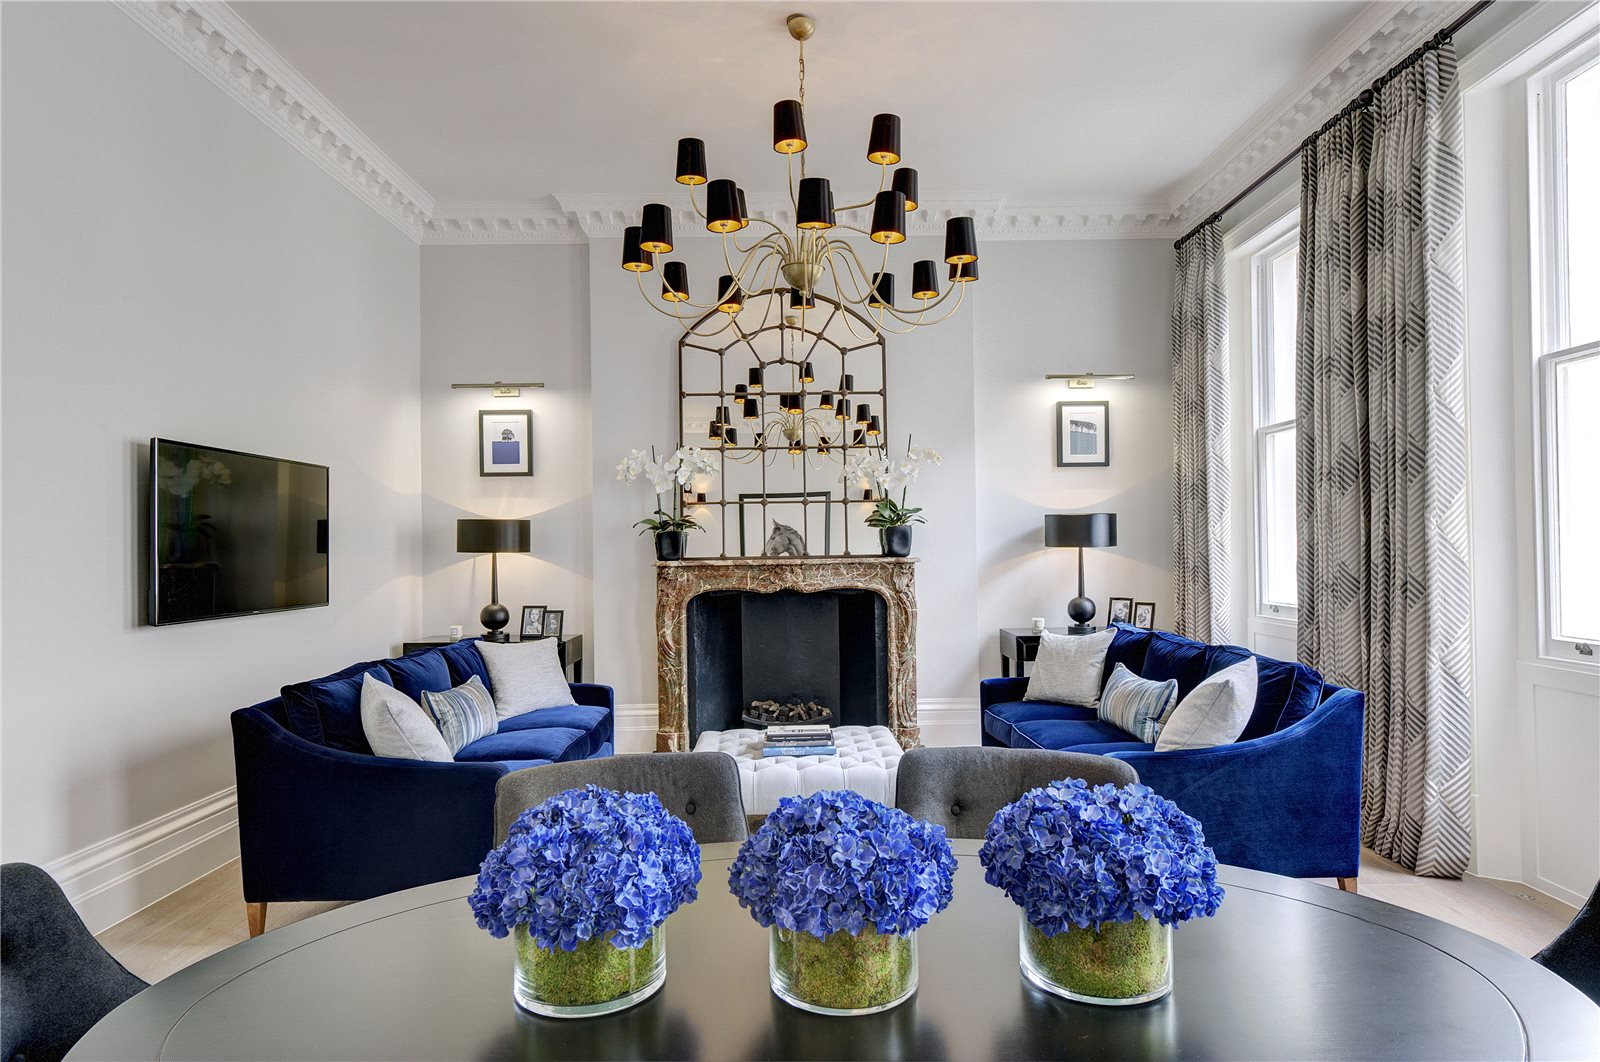 Apartments / Residences for Sale at Eaton Square, London, SW1W London, England